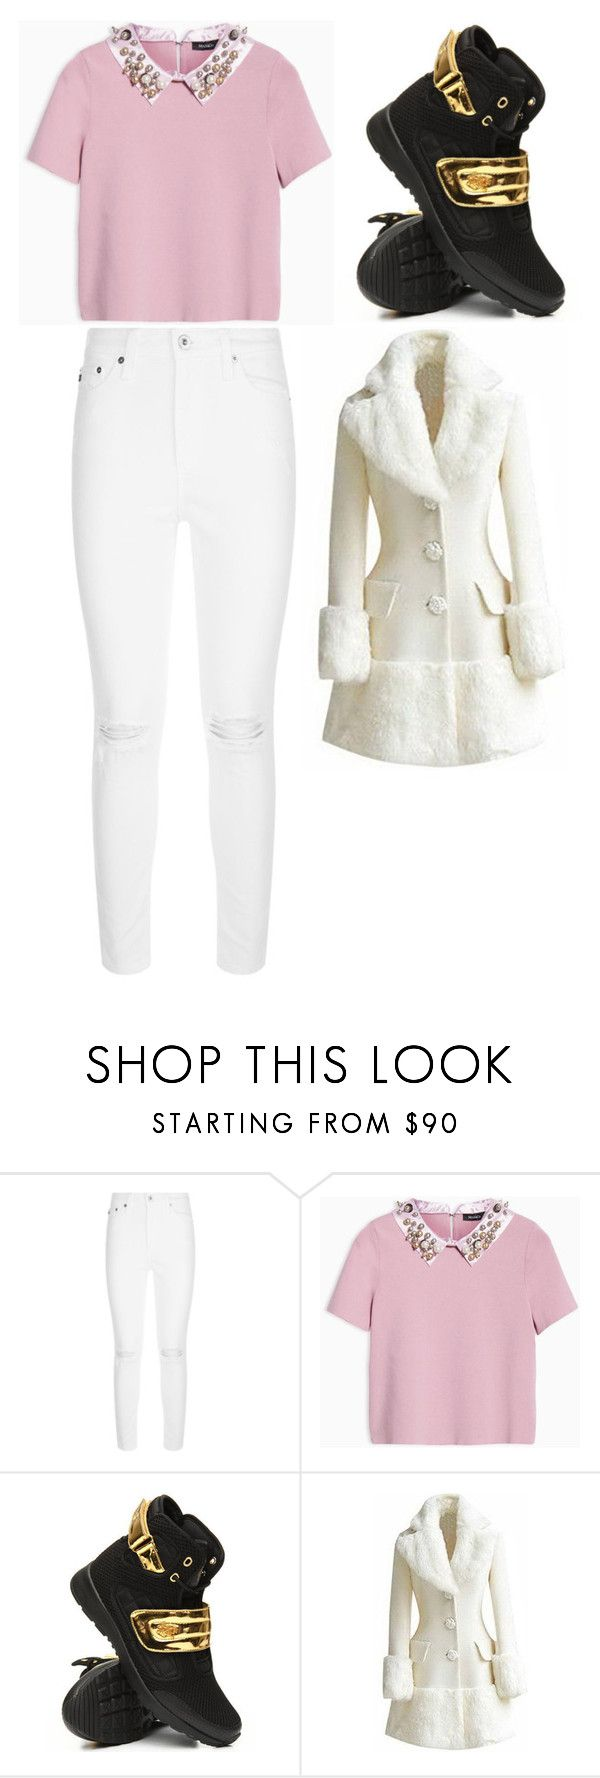 """Wish Now"" by gineskaplaza on Polyvore featuring moda, AG Adriano Goldschmied, Max&Co. y Vlado"